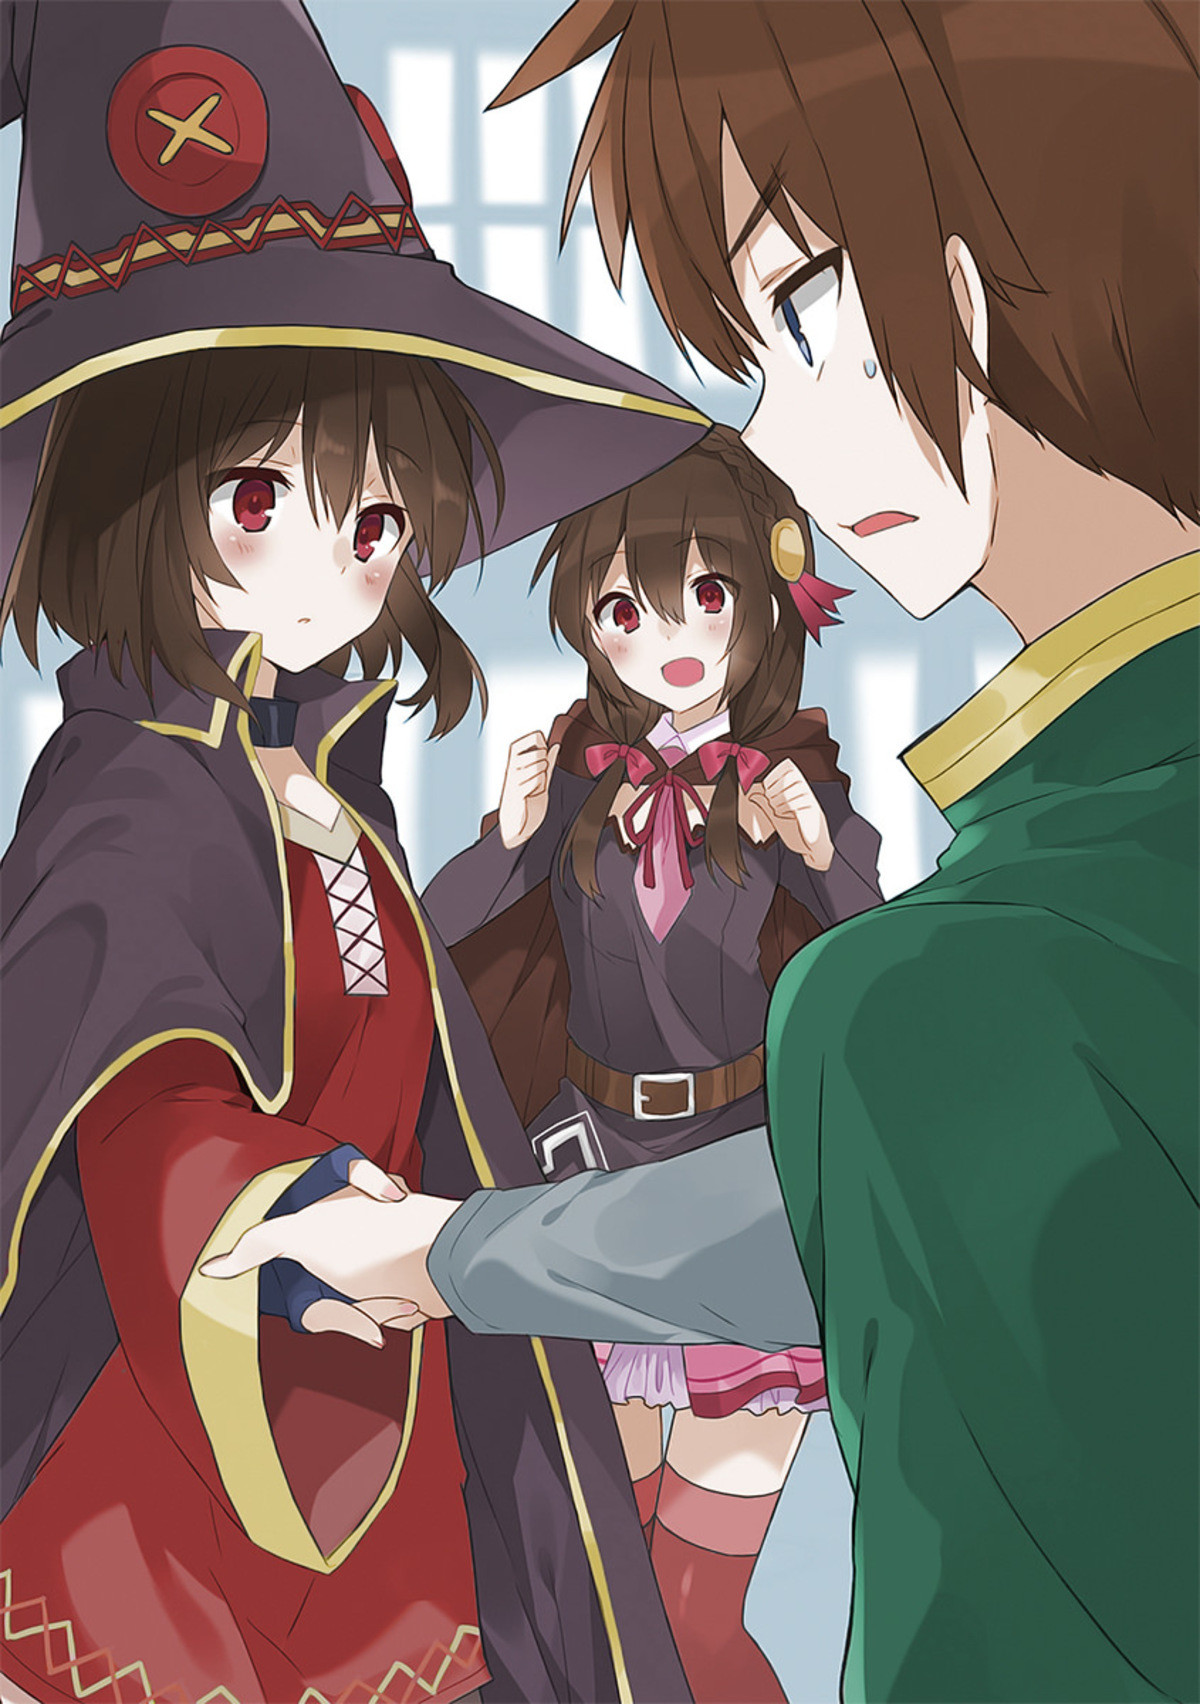 Megumin . join list: Lewds4DHeart (1587 subs)Mention History join list:. have something less lewd to adjust yourself